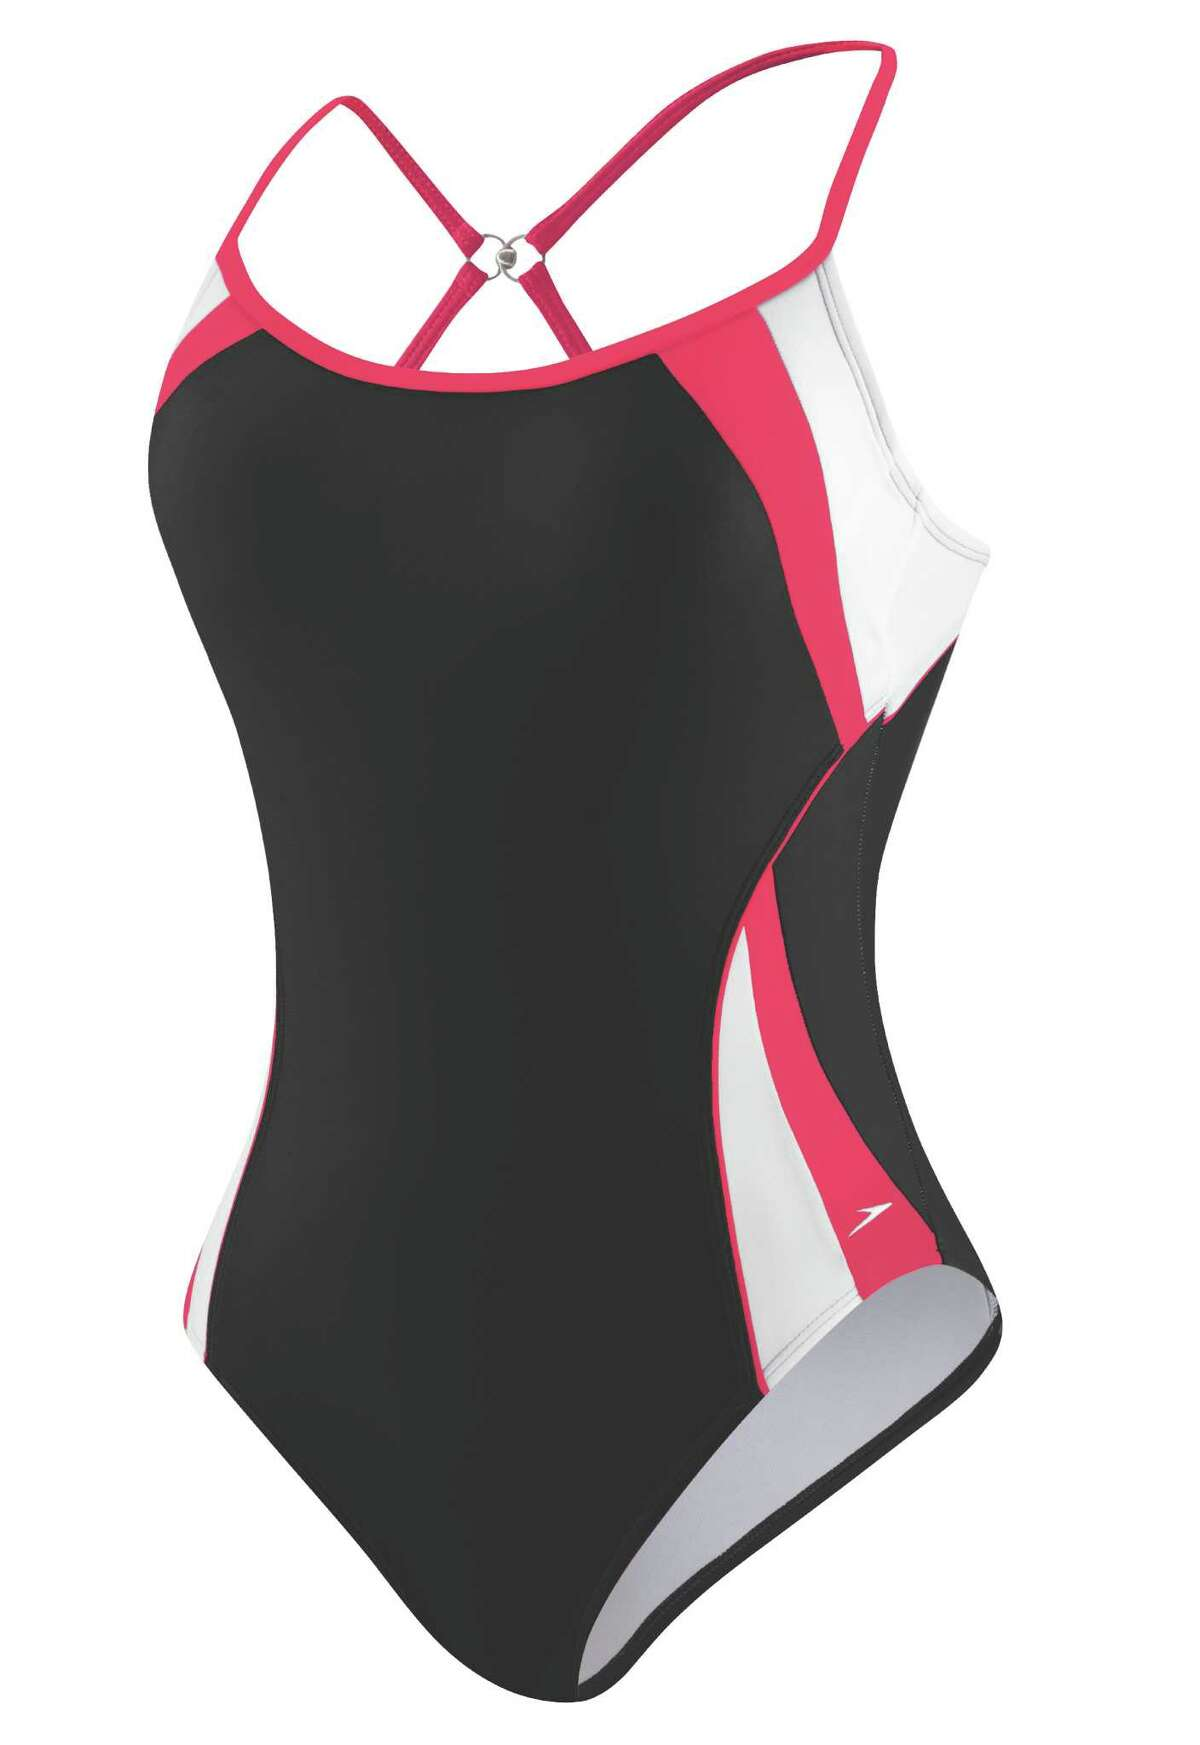 Speedo Fitness Spiral Splice Clip Back swimsuit Proper swim form requires a proper training swimsuit (save the bikinis for days spent lounging, not lapping), but if you must invest in a suit for swimming fast, at least this one by swimming pros Speedo has a sexy racing stripe, plus adjustable straps to wear straight or criss-crossed for a more custom fit. Buy it: $78 at speedo.com